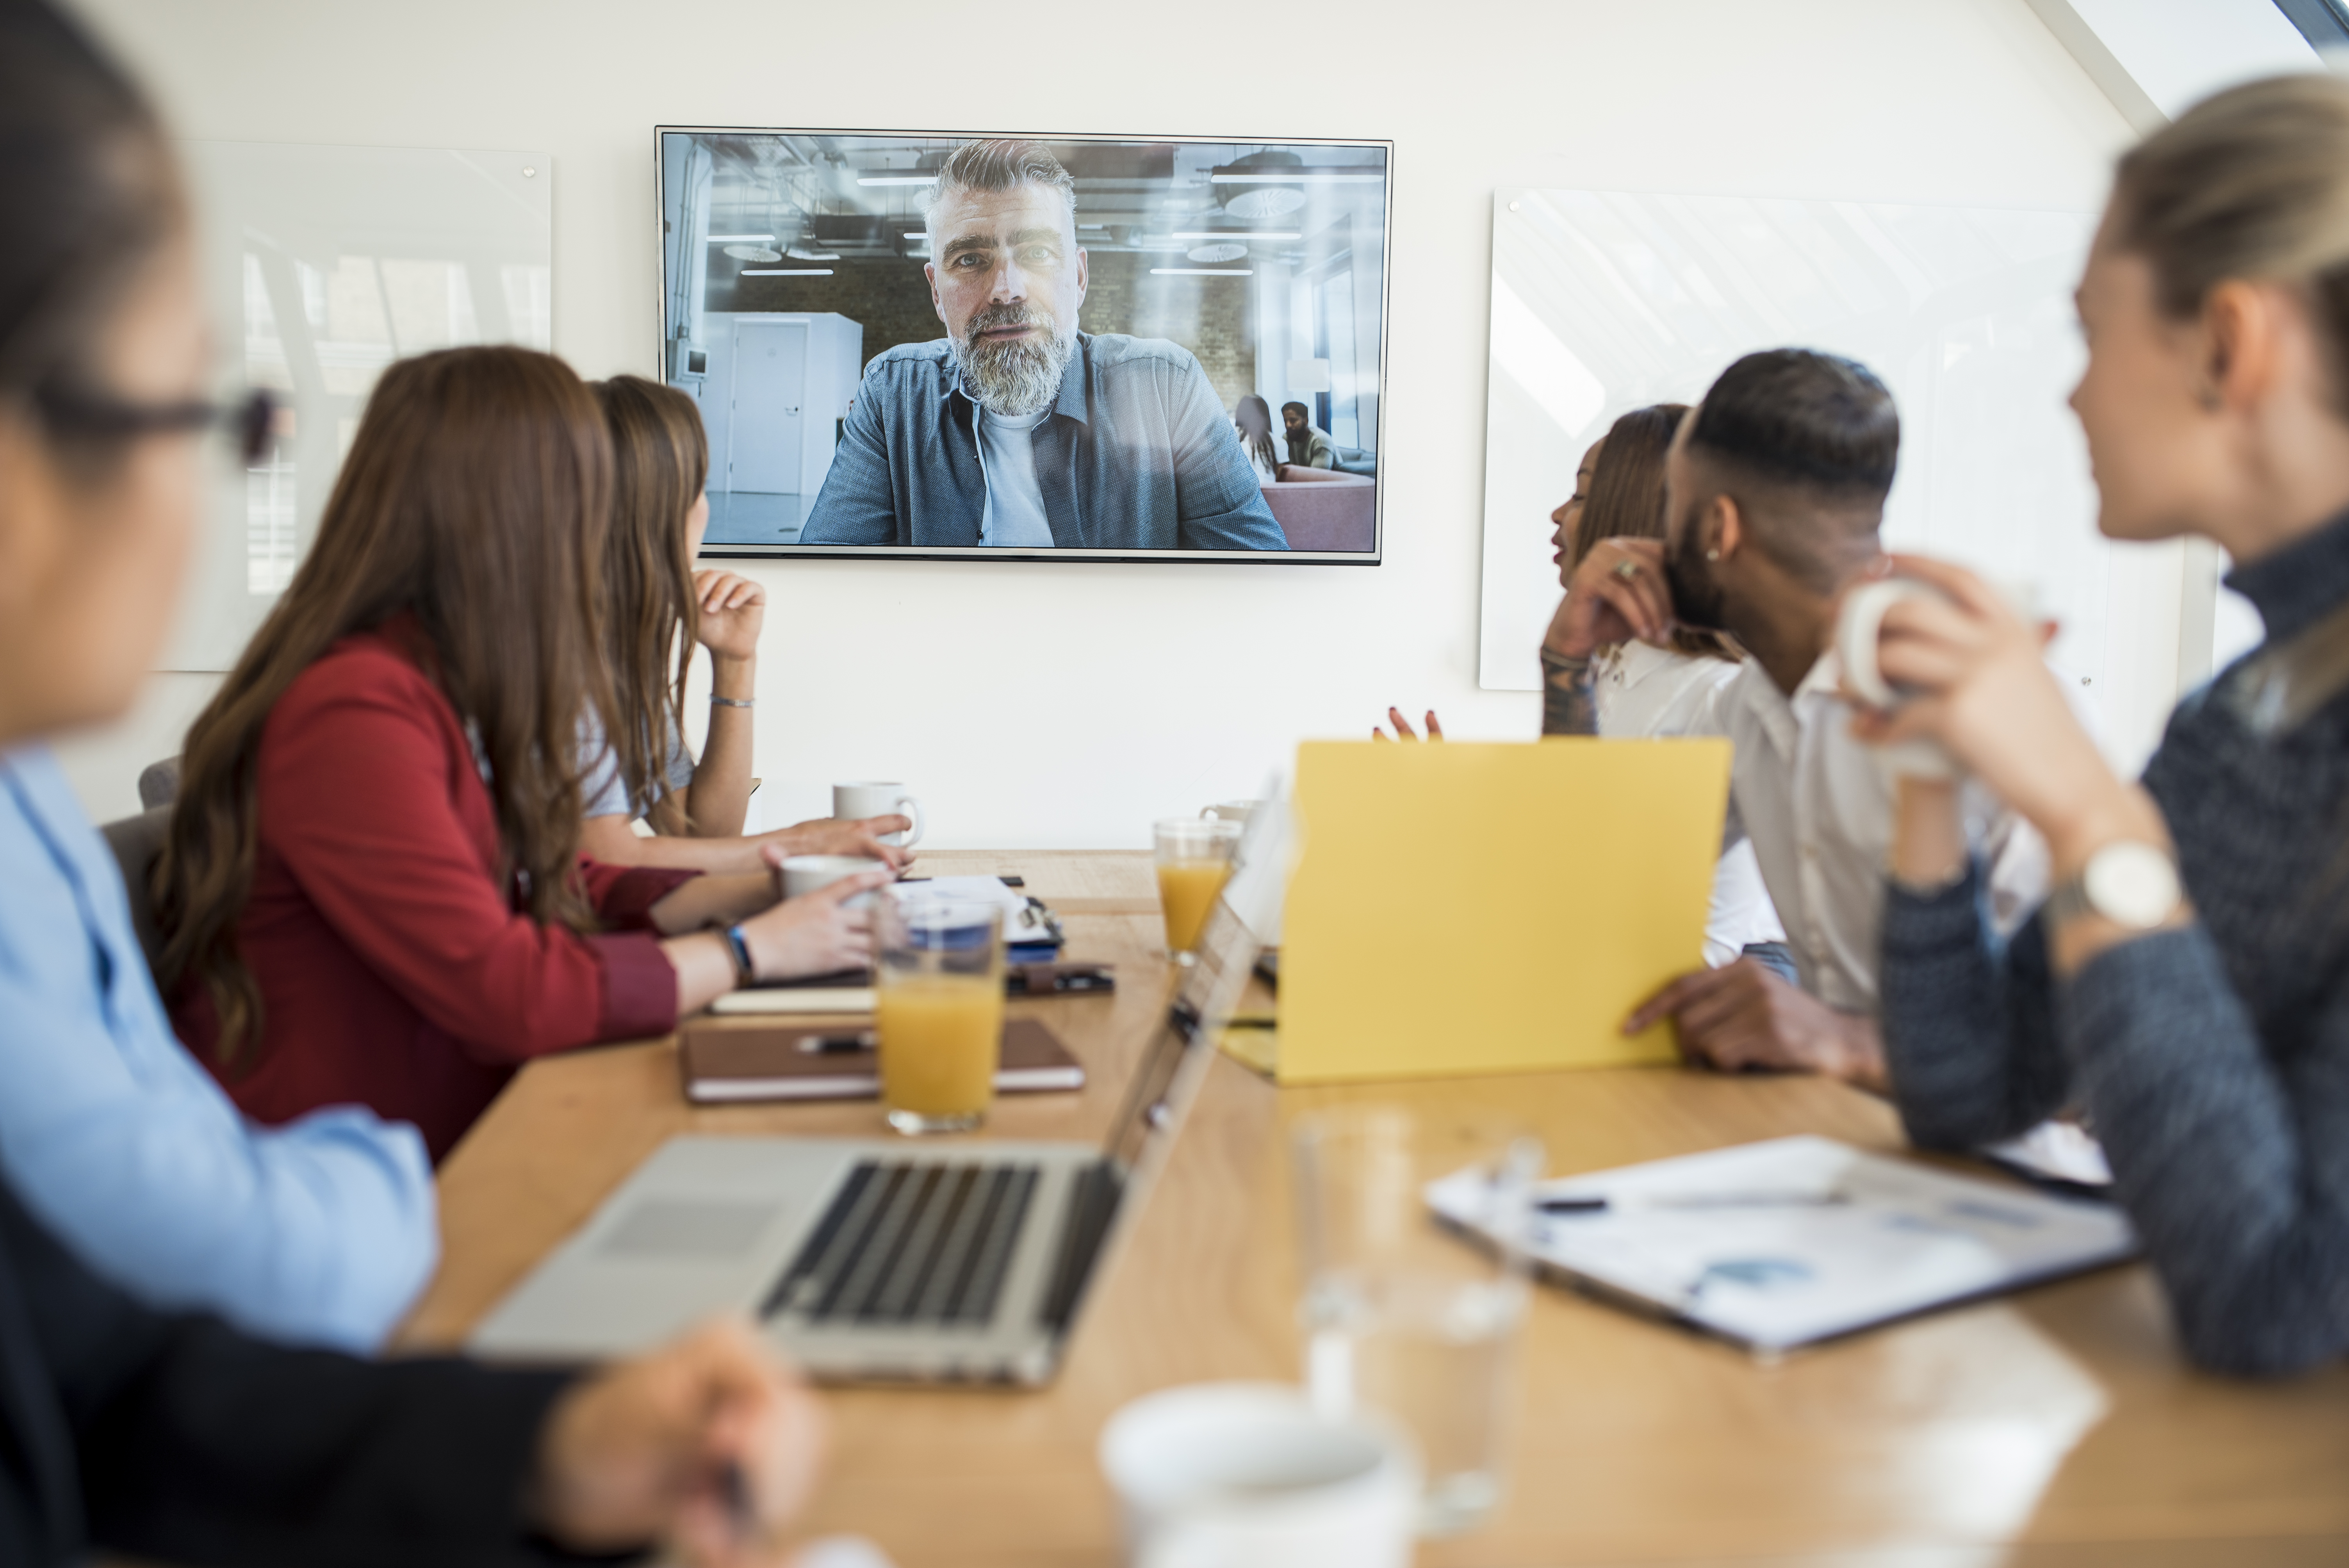 3 Tips to Help Extrovert Team Members Thrive in The Remote Workplace